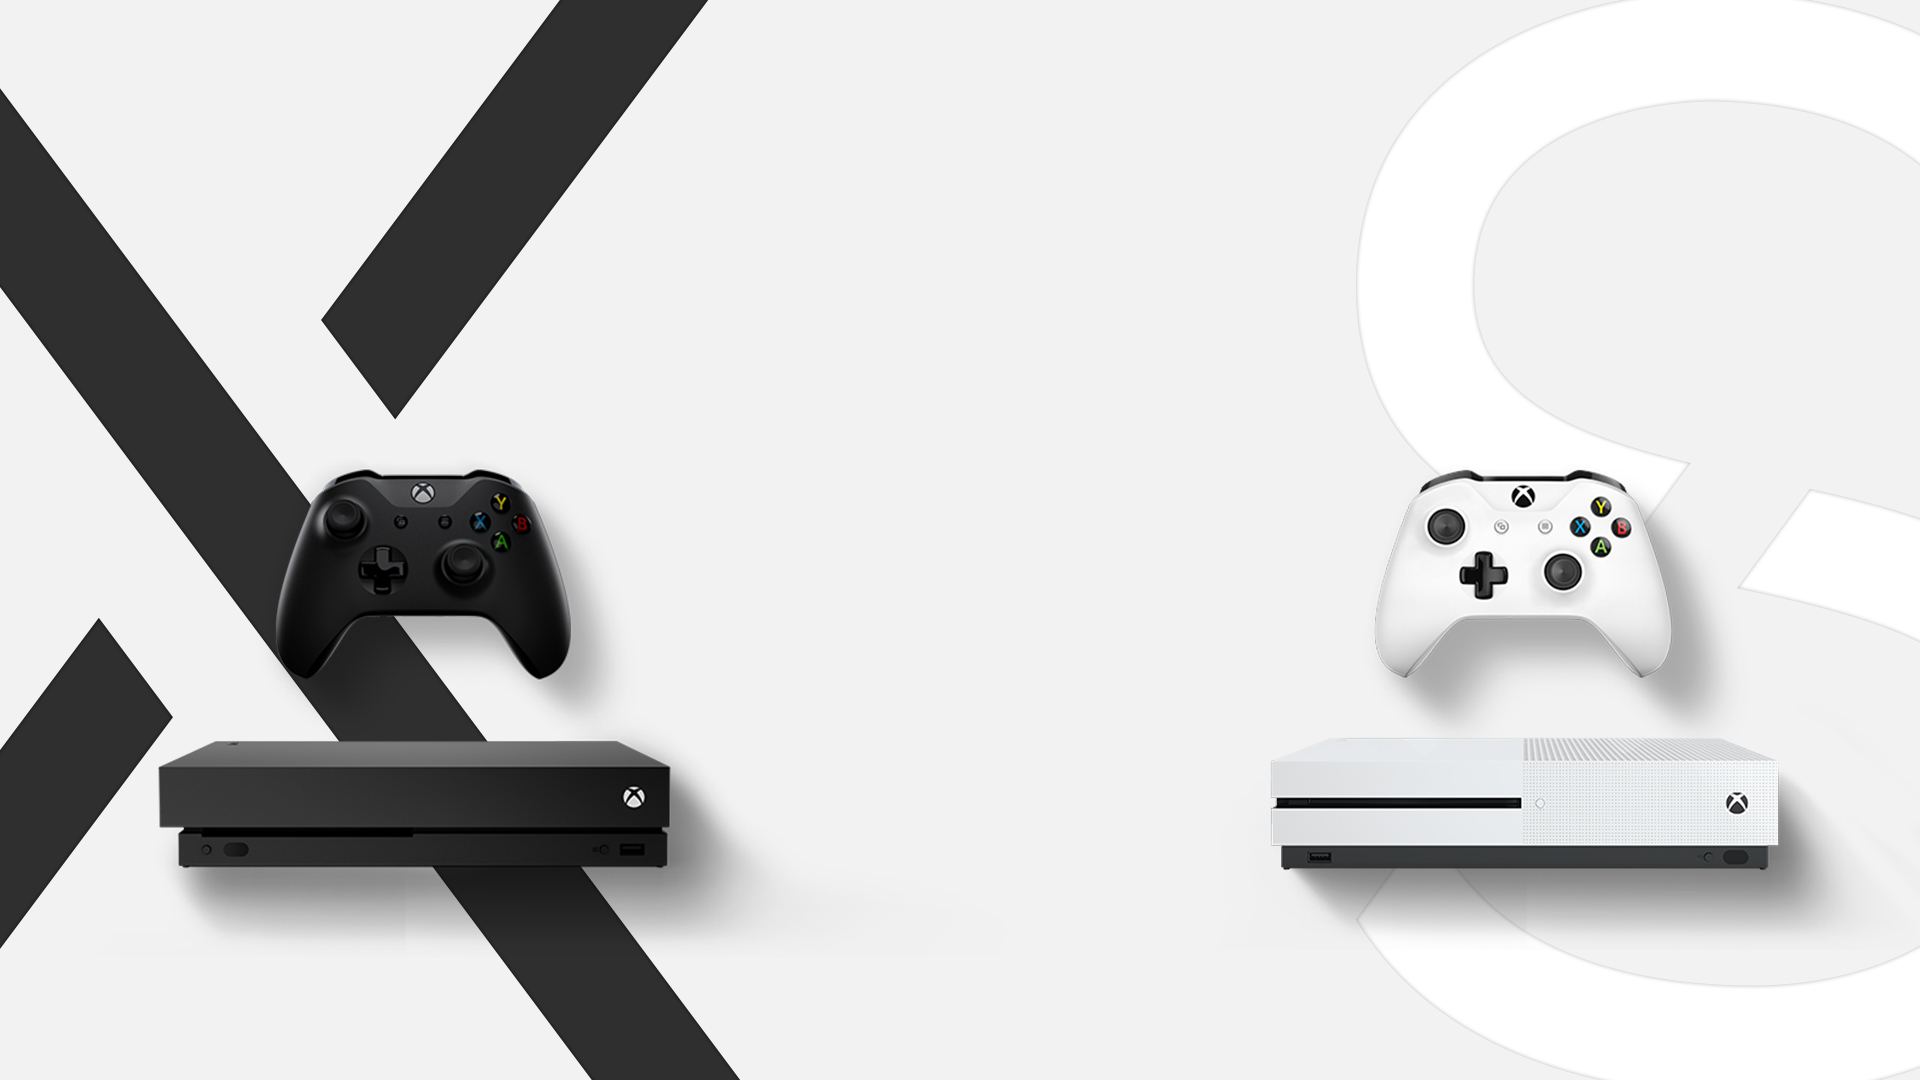 medium resolution of xbox one x and xbox one s consoles